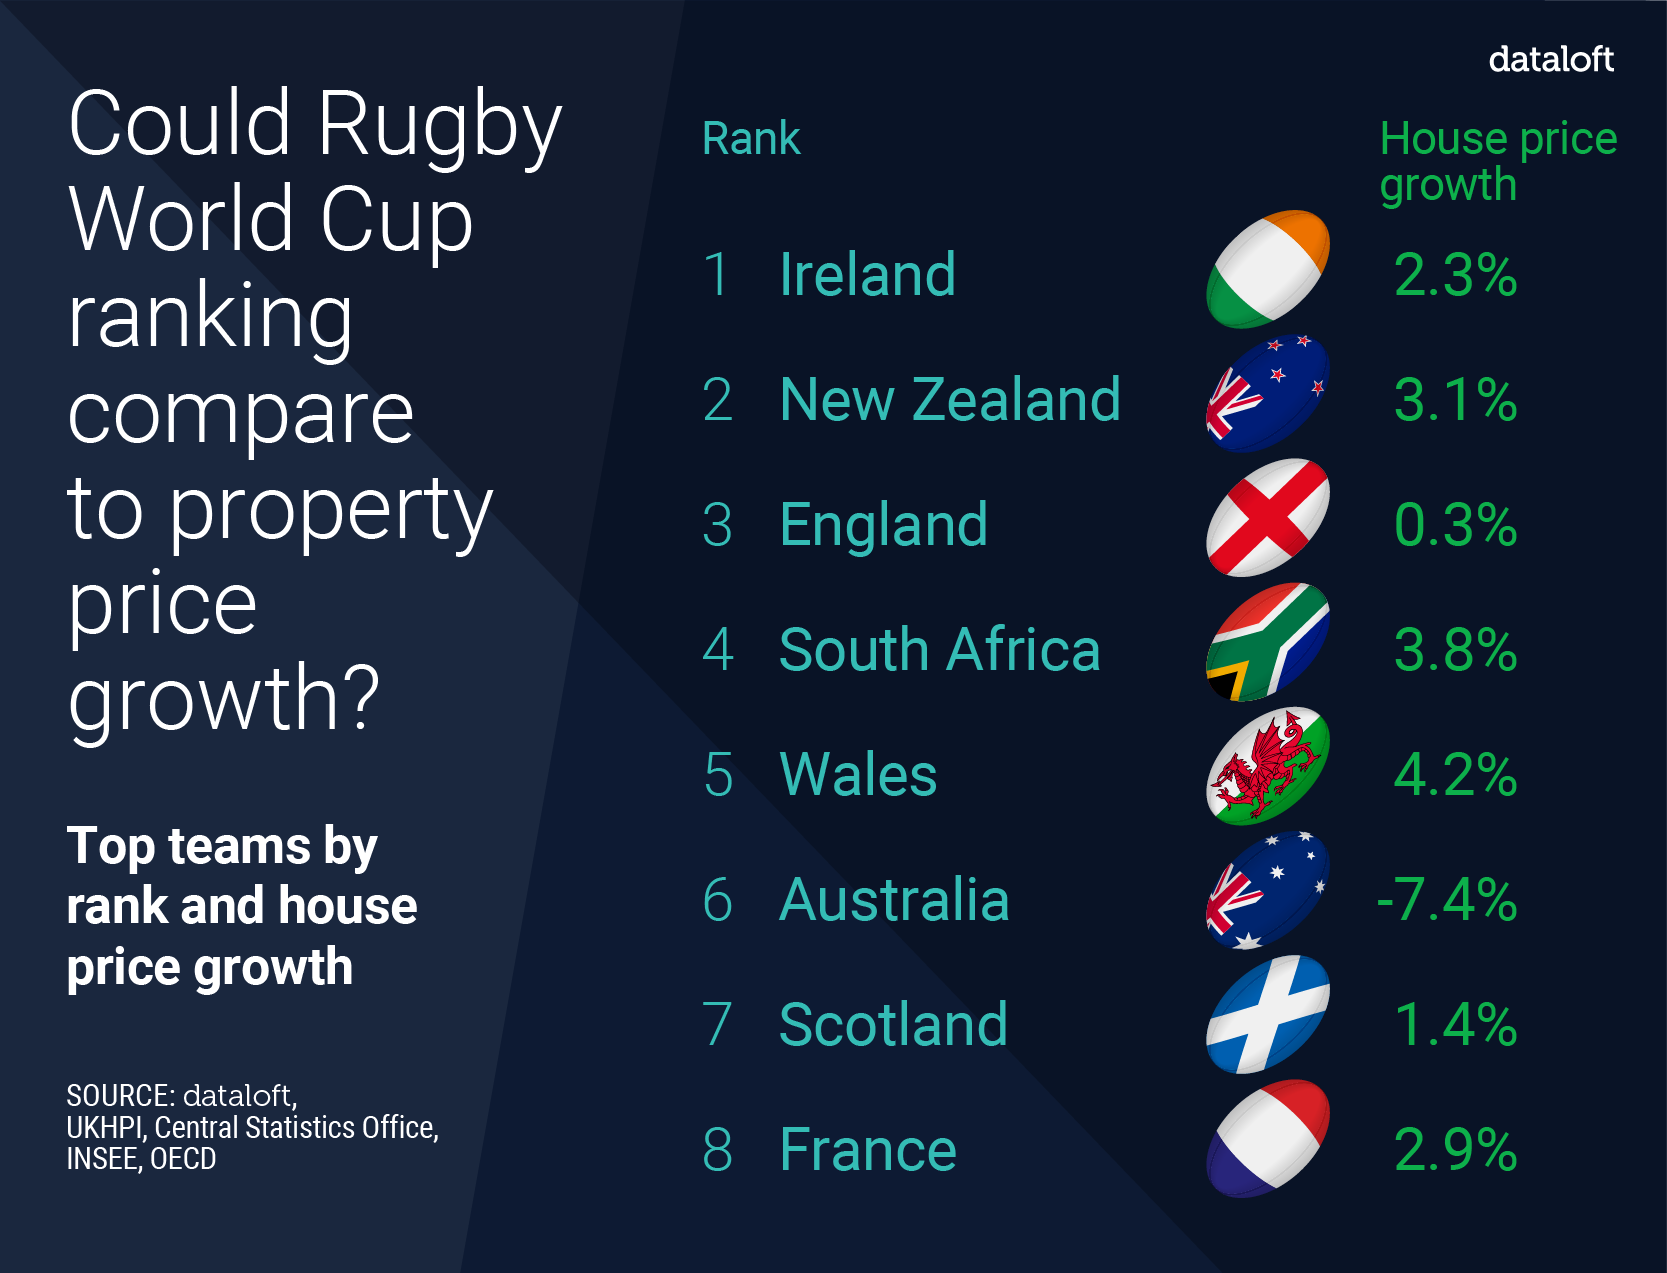 Rugby World Cup ranking compared to property growth…